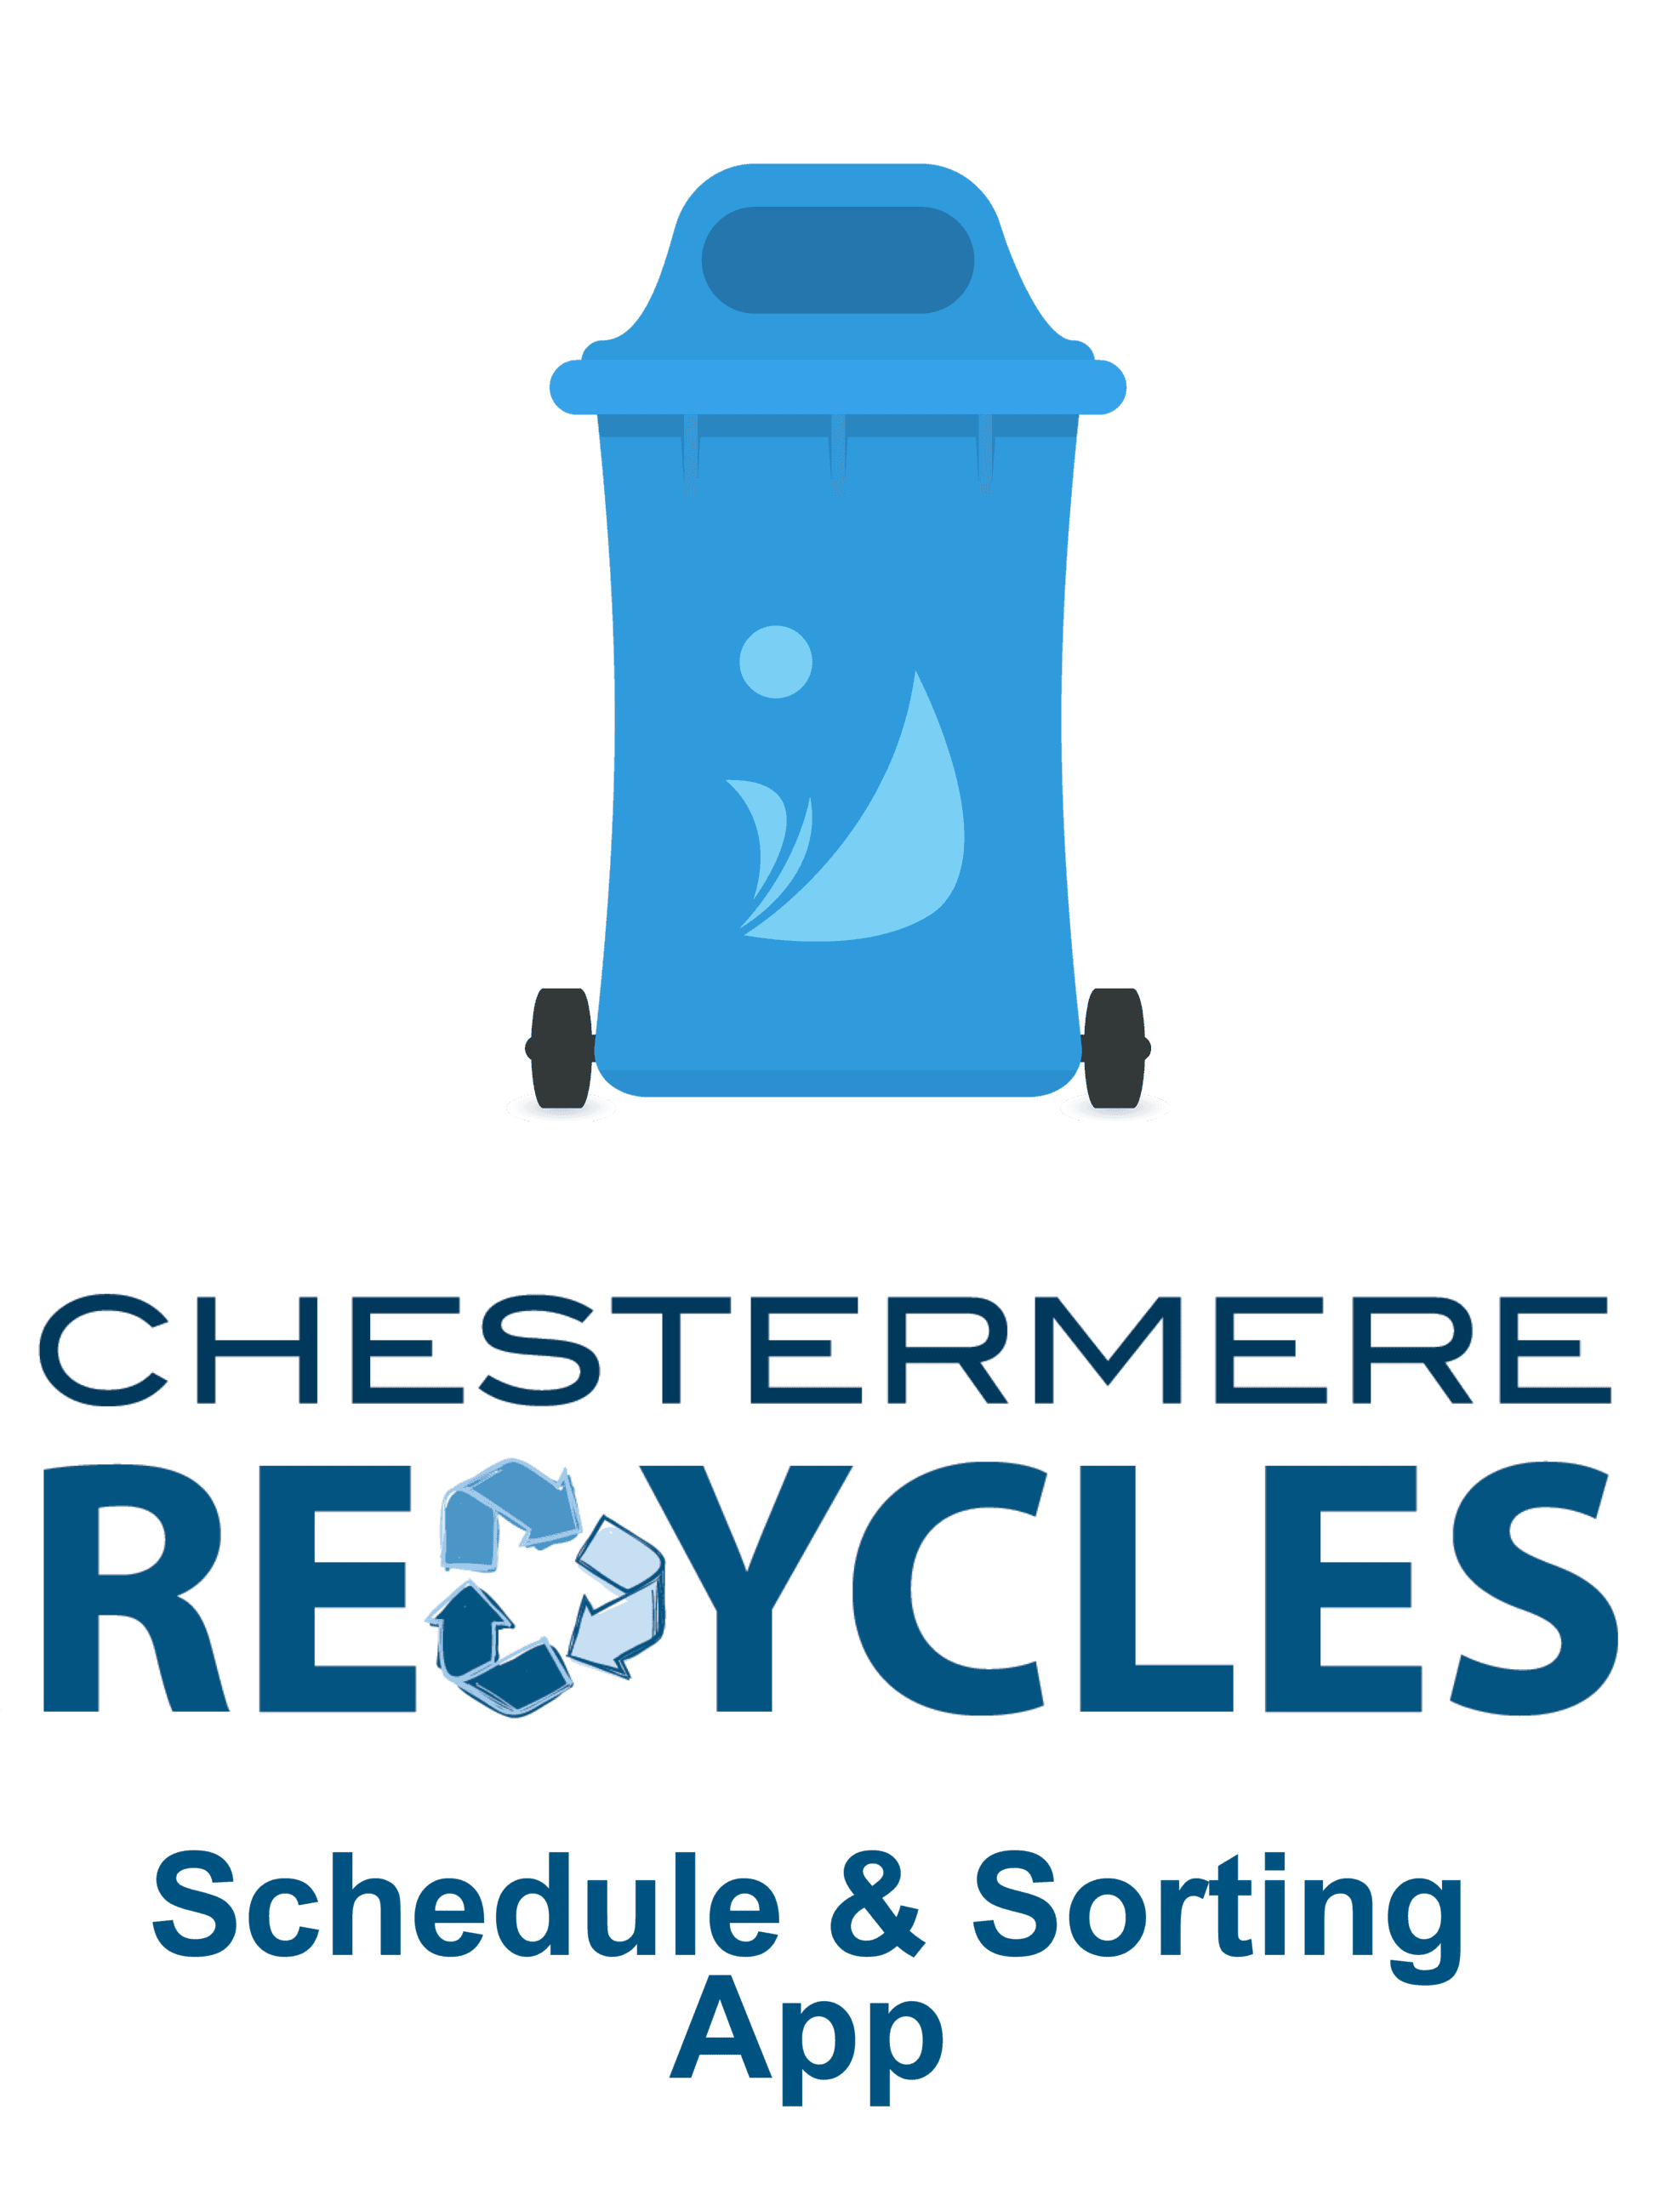 Chestermere Recycles App Icon